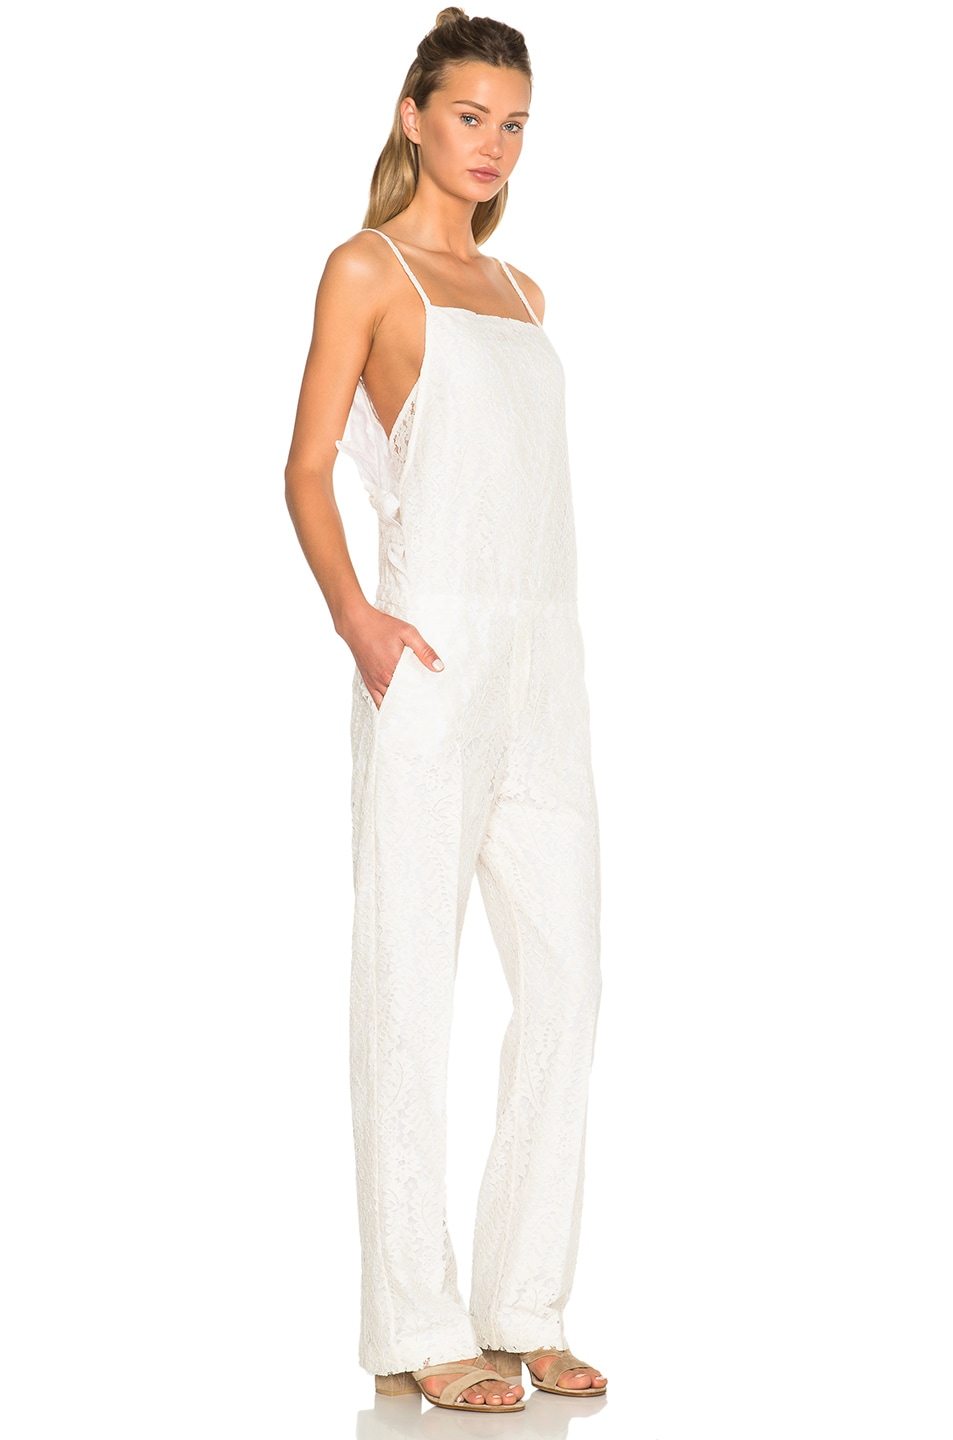 Image 3 of No. 21 Jumpsuit in White